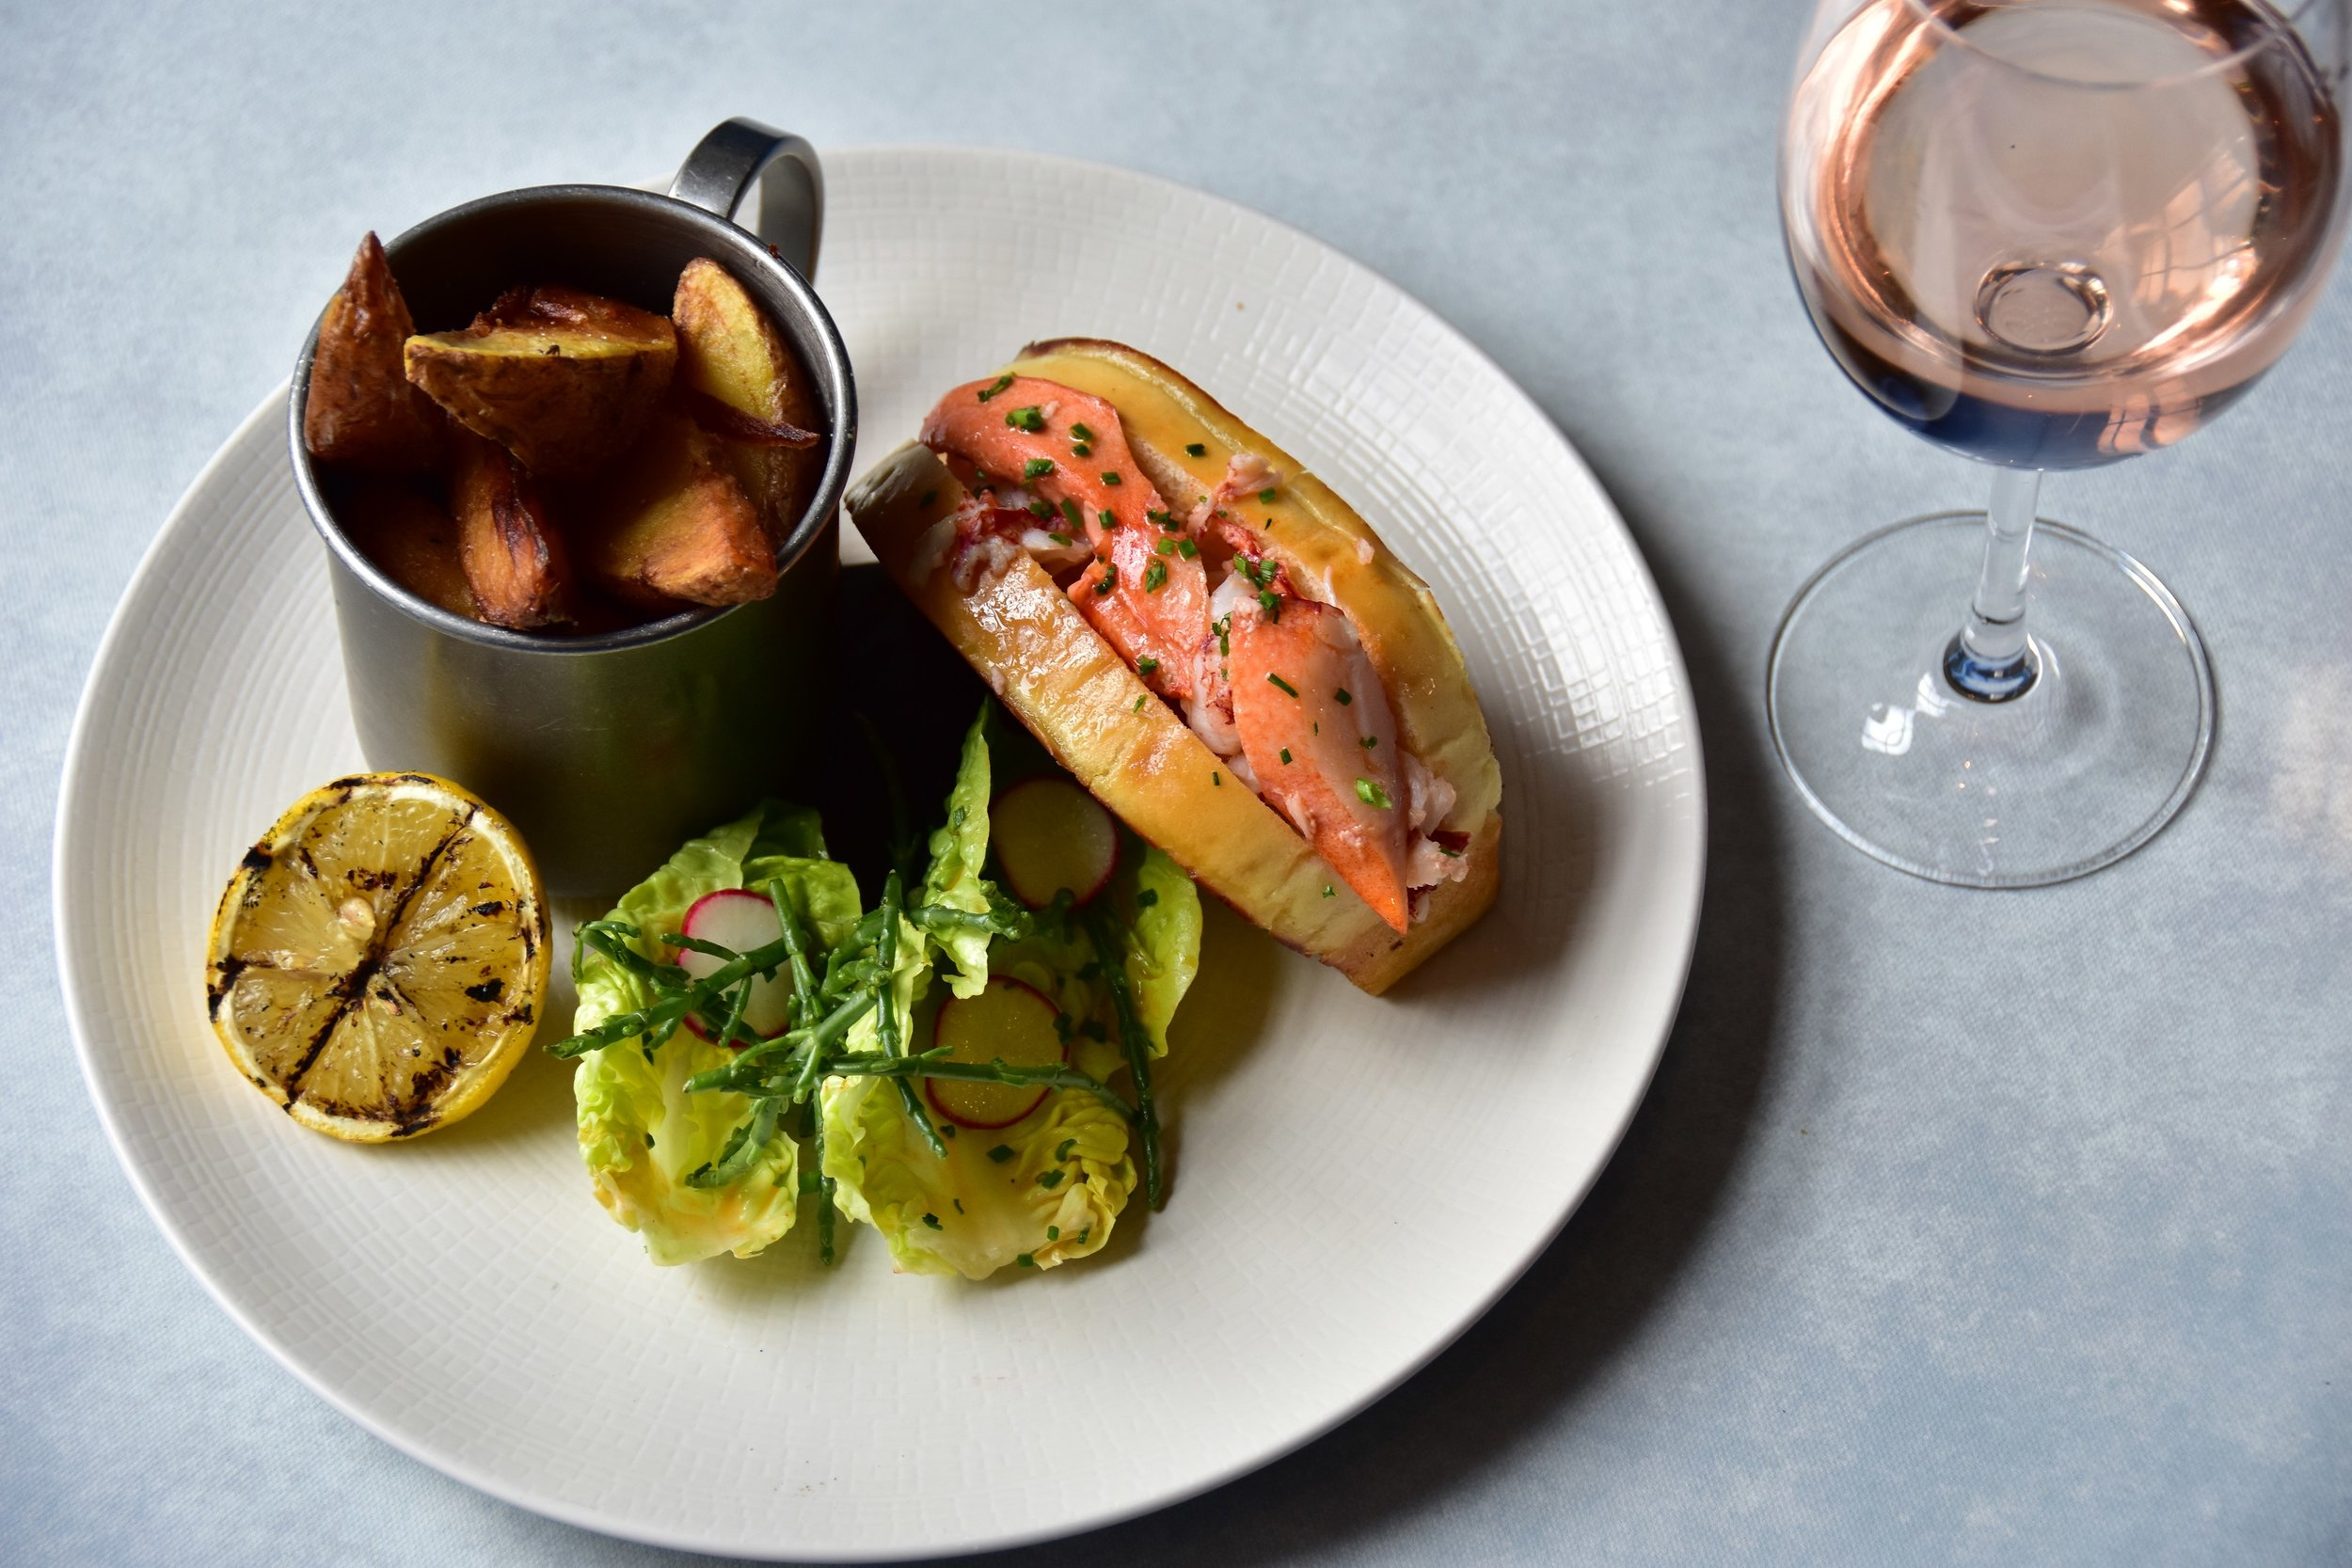 Lobster rolls on the menu at 3 Edinburgh pubs this Summer - Read full article here